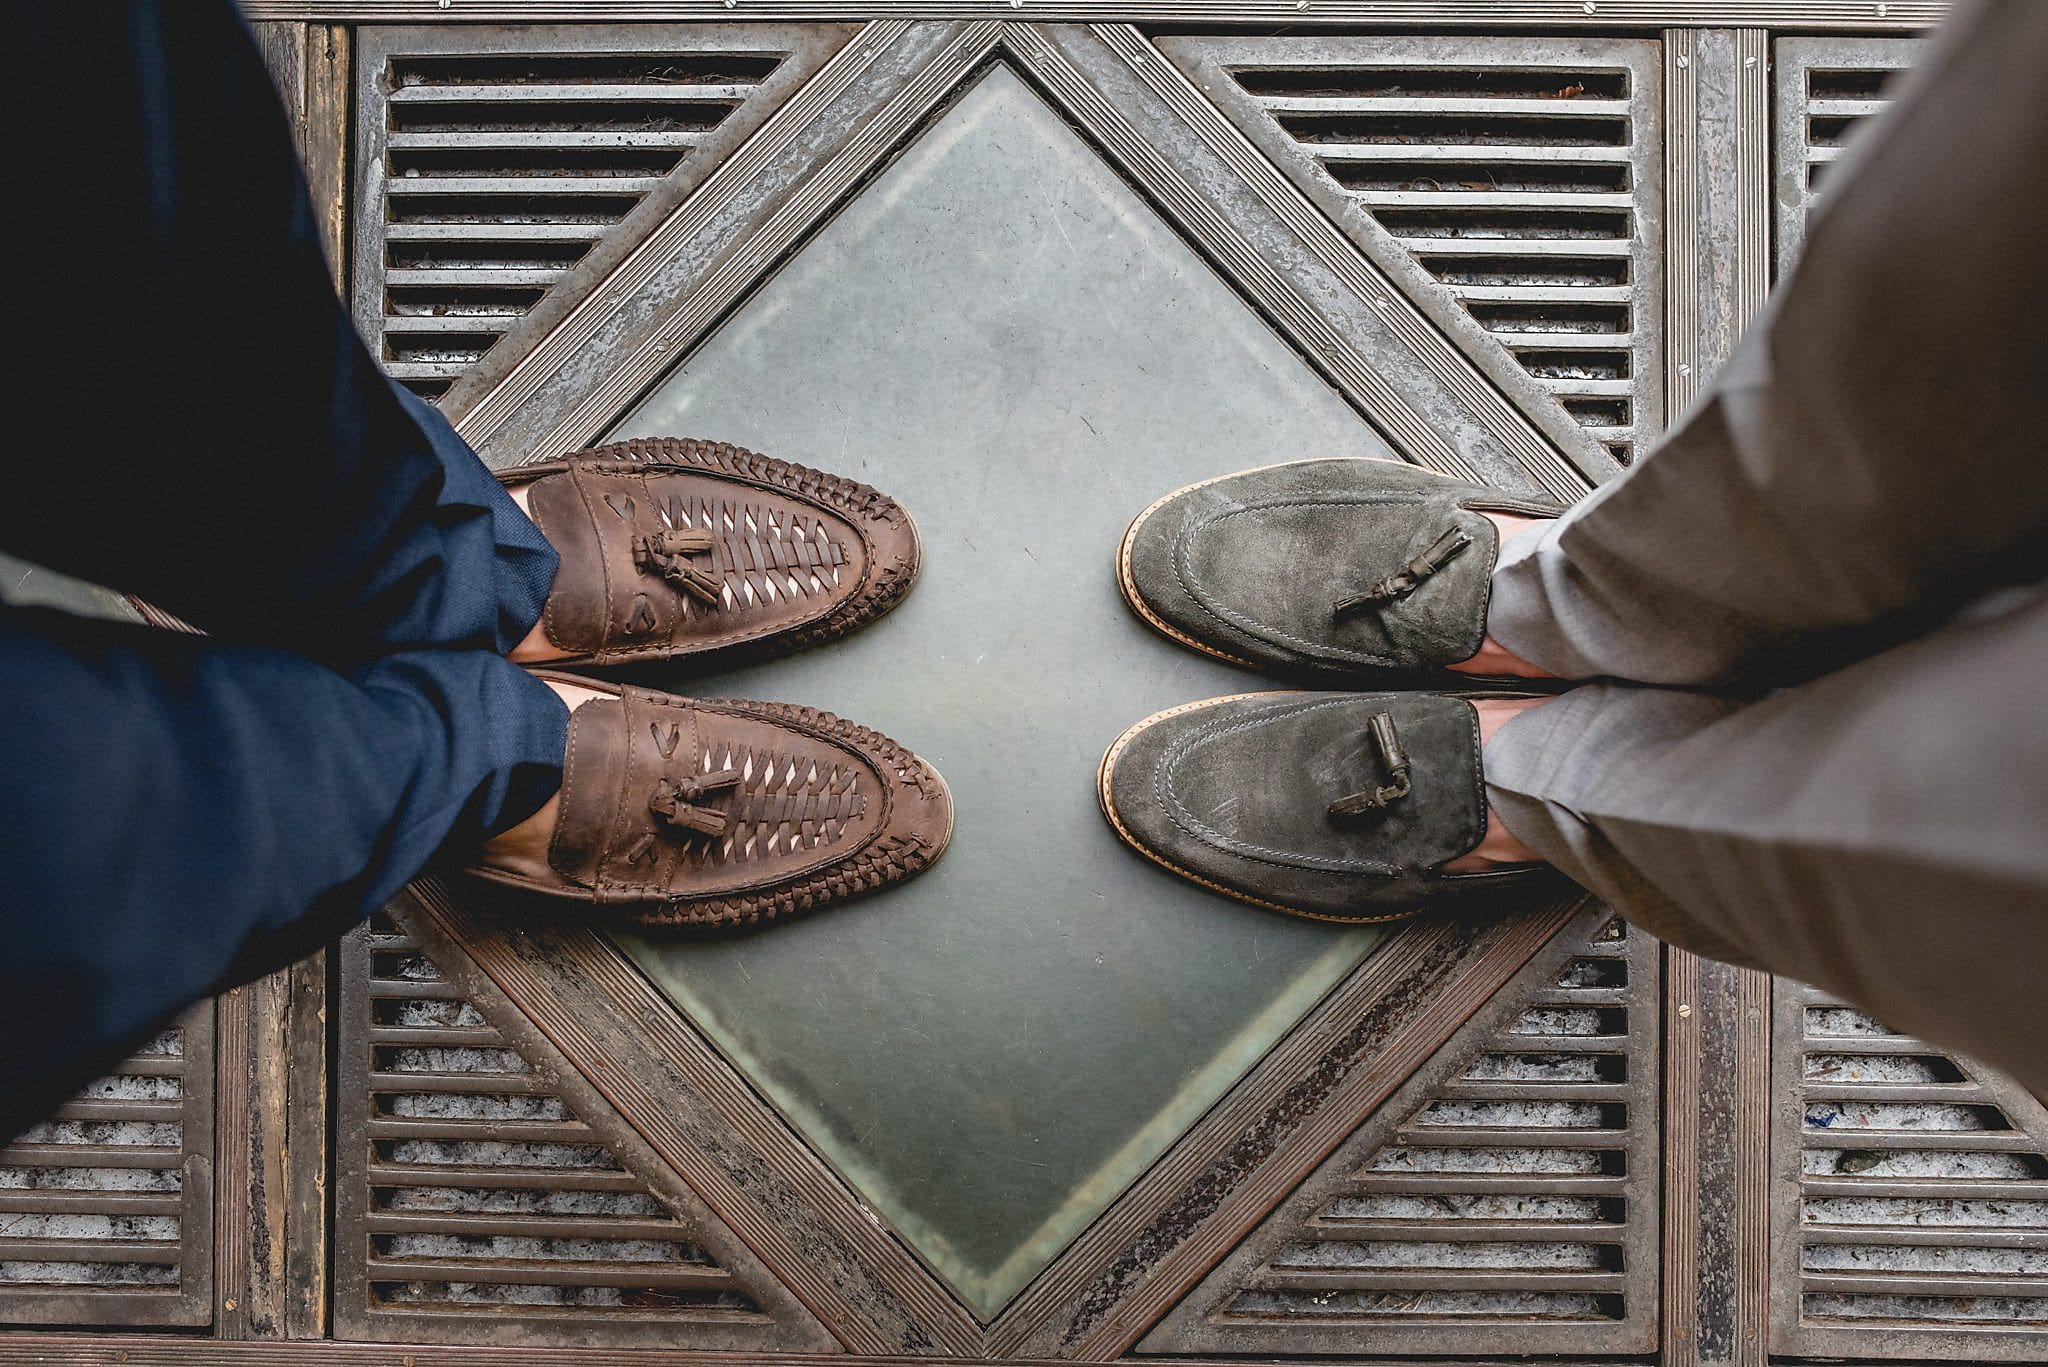 A shot from above showing Drew and Tom's loafers as they face each other on a stylish diamond-patterned terrace